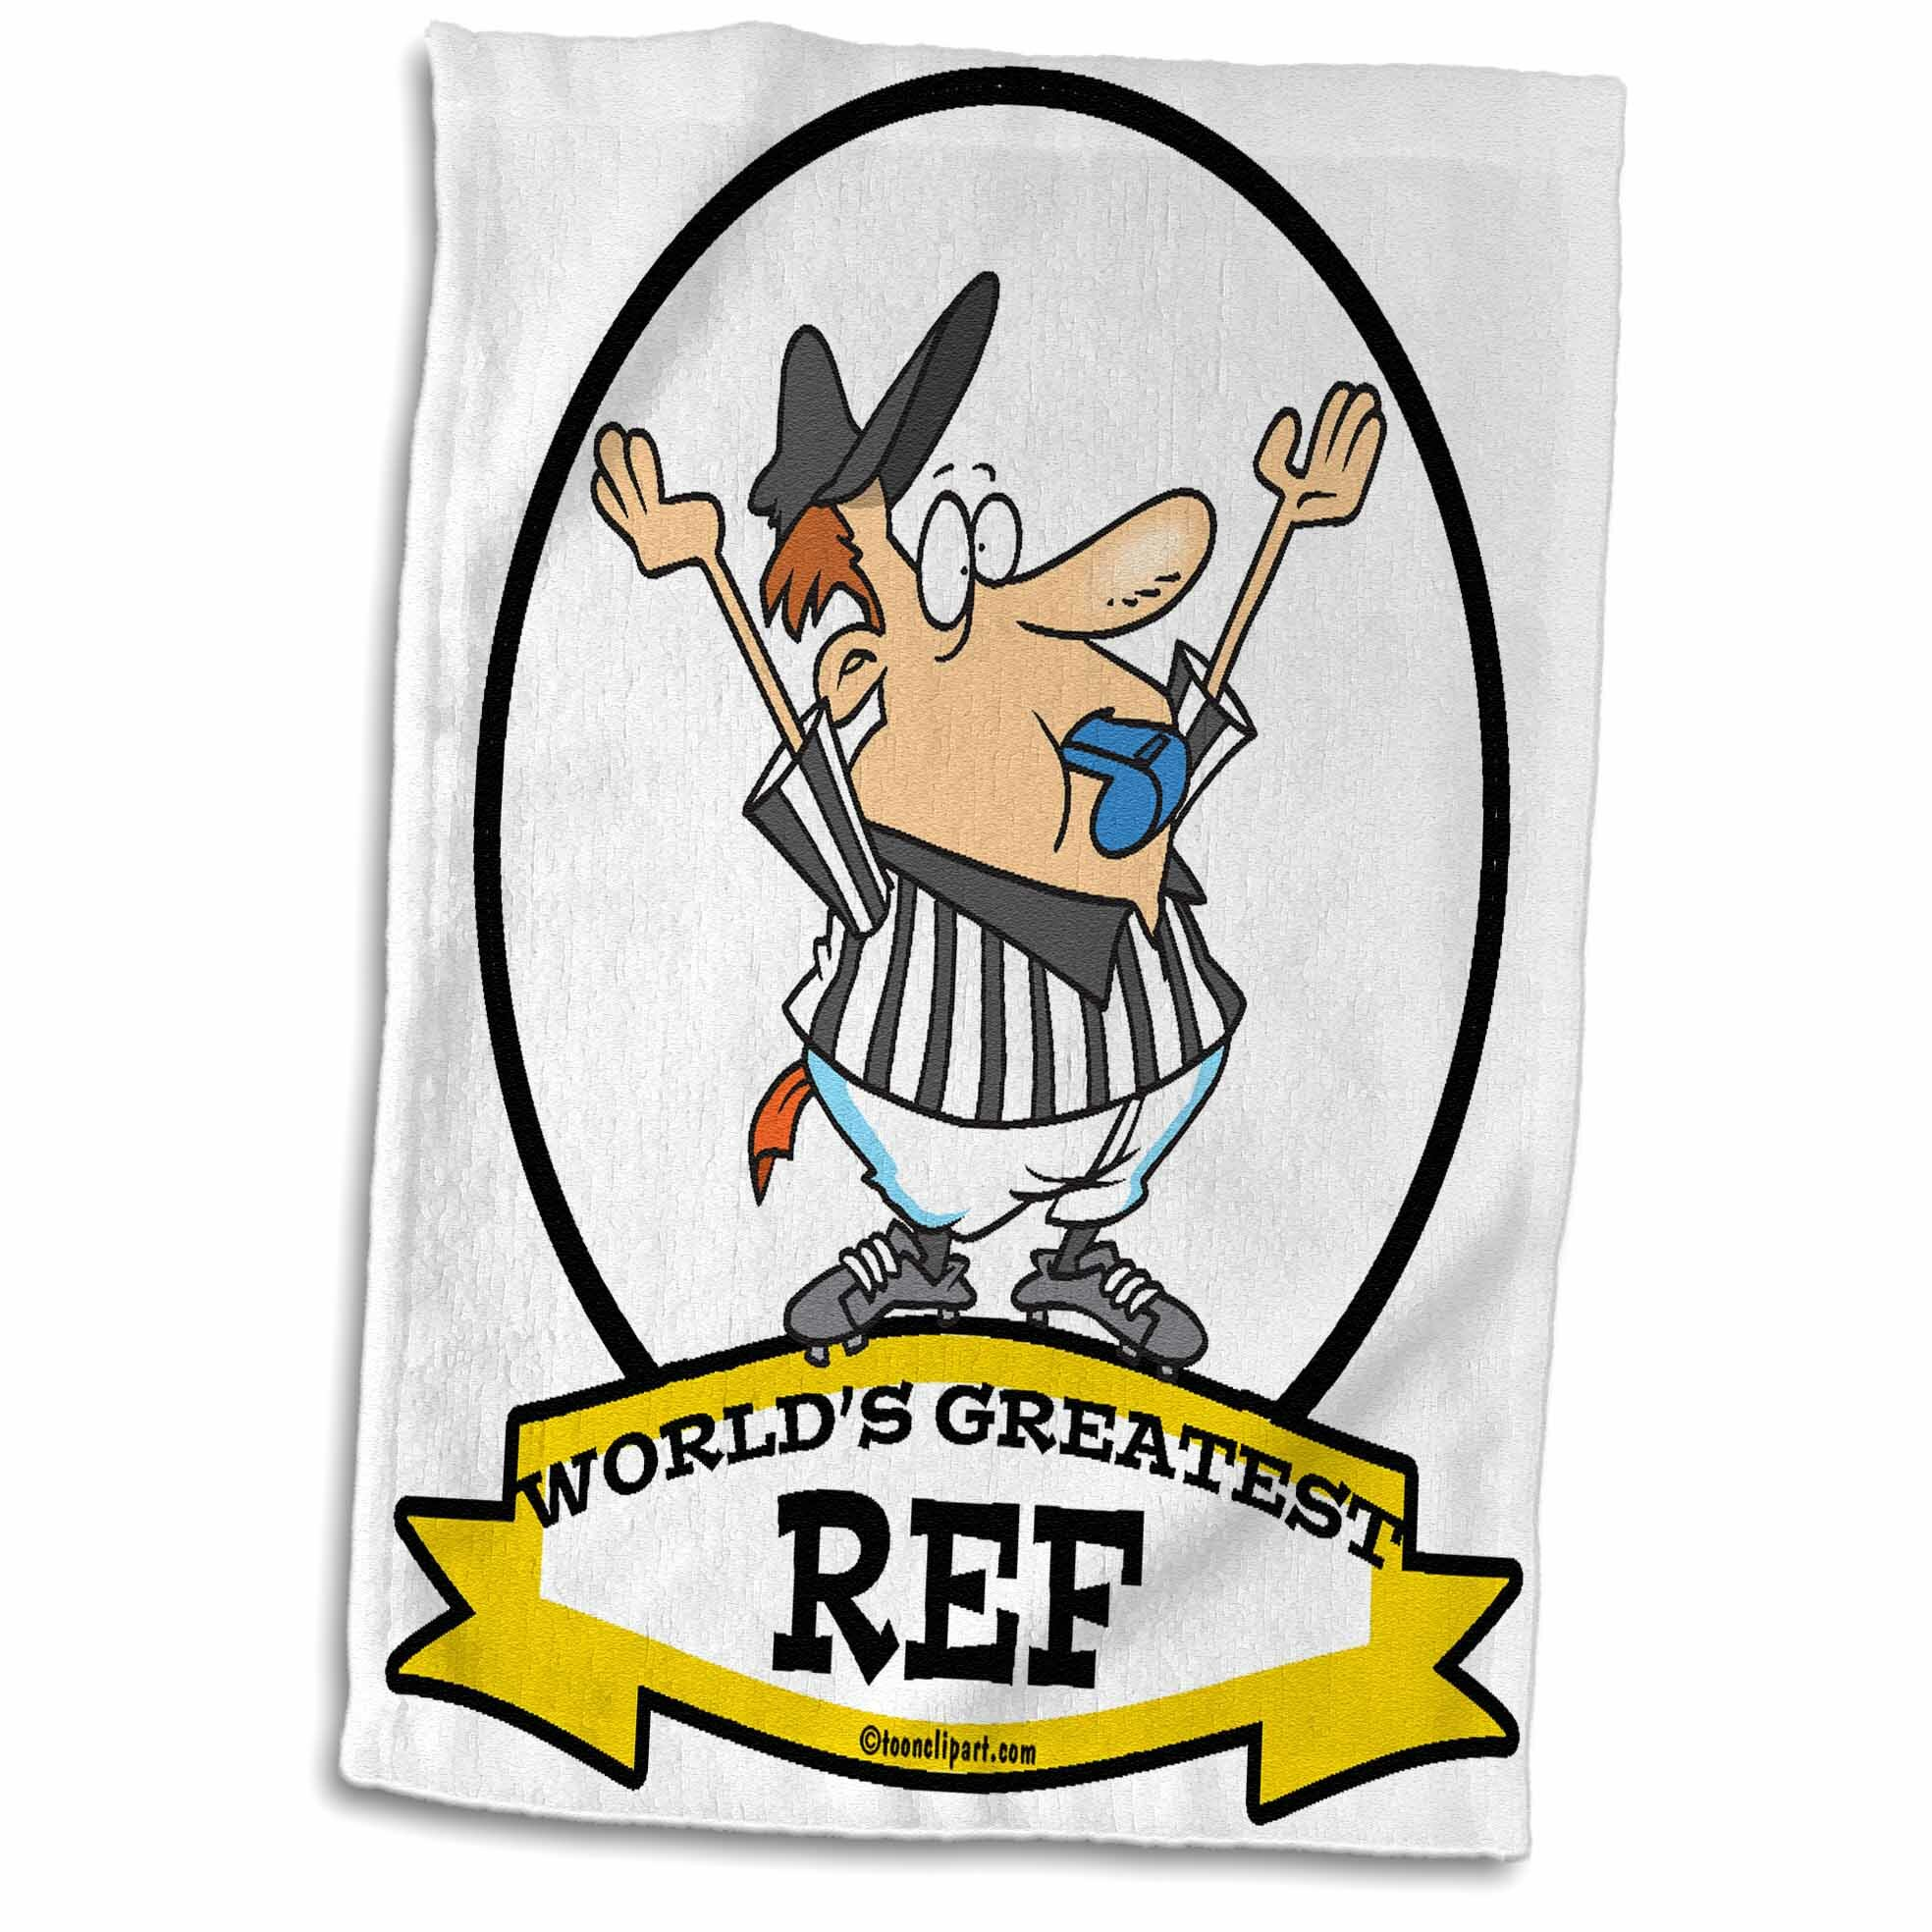 Symple Stuff Berrian Funny Worlds Greatest Ref Referee